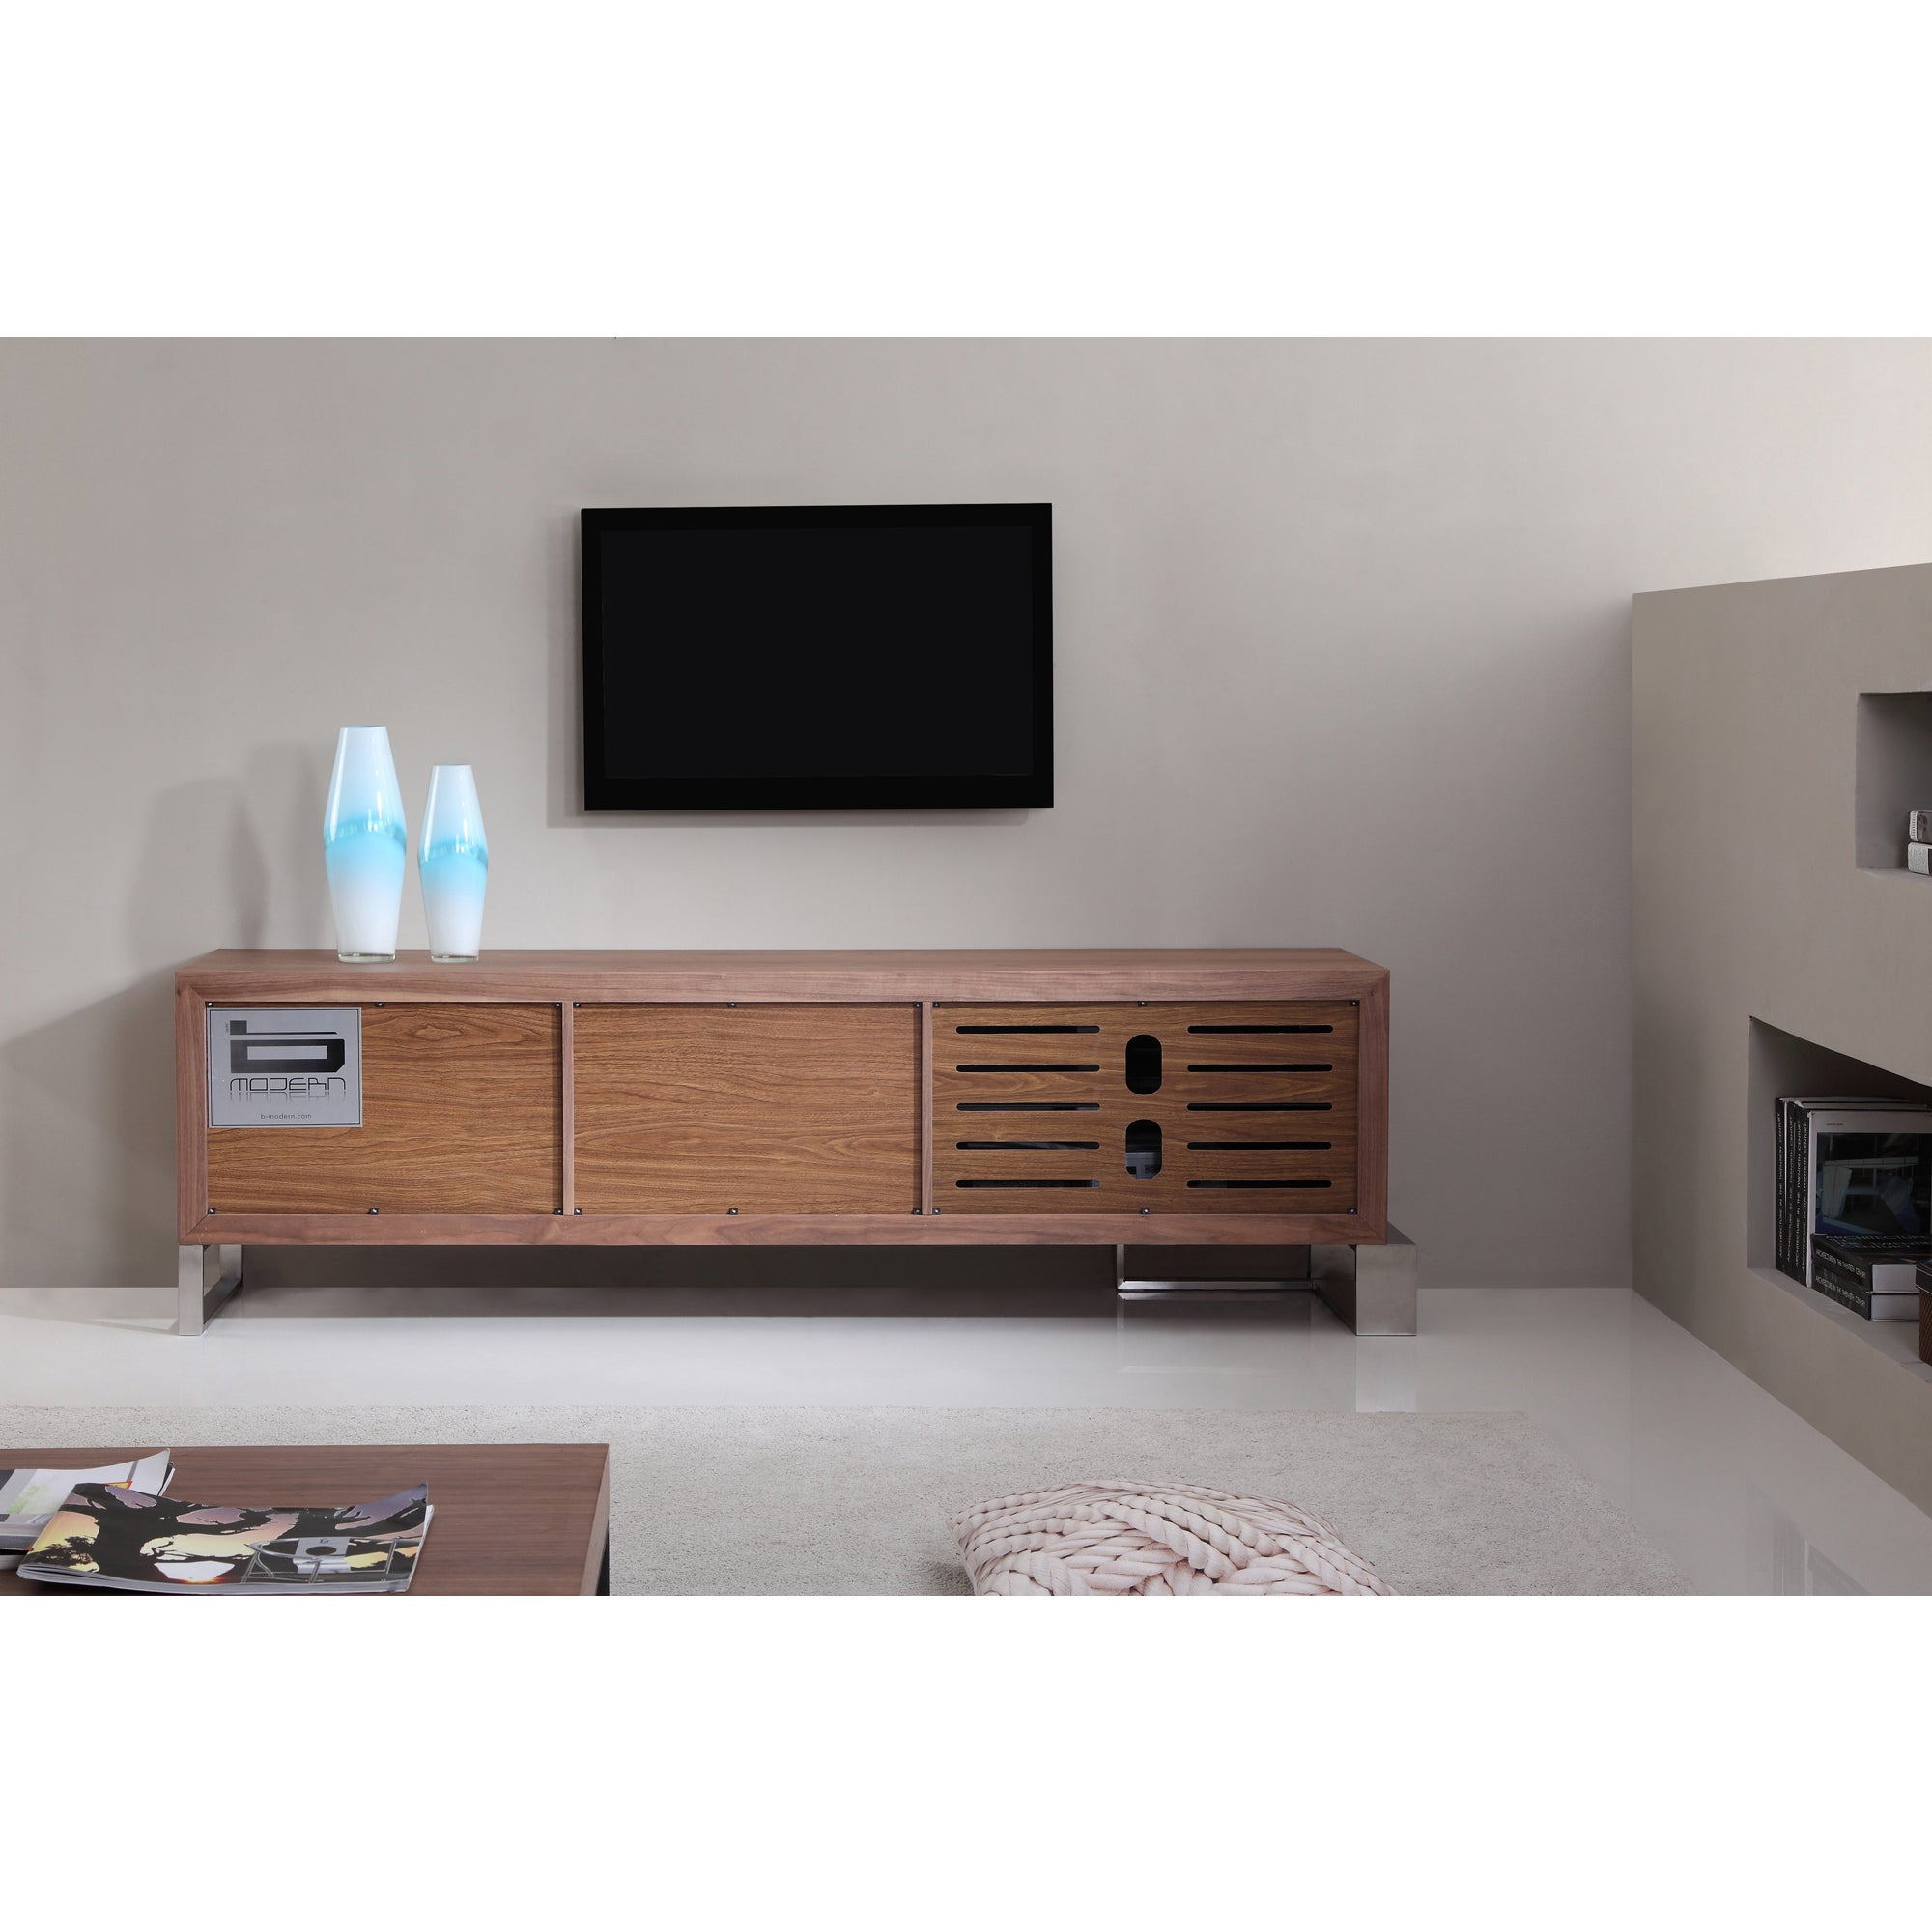 Entertainer Light Walnut Stainless Steel Modern Tv Stand With Ir Gl On Free Shipping Today 10326032